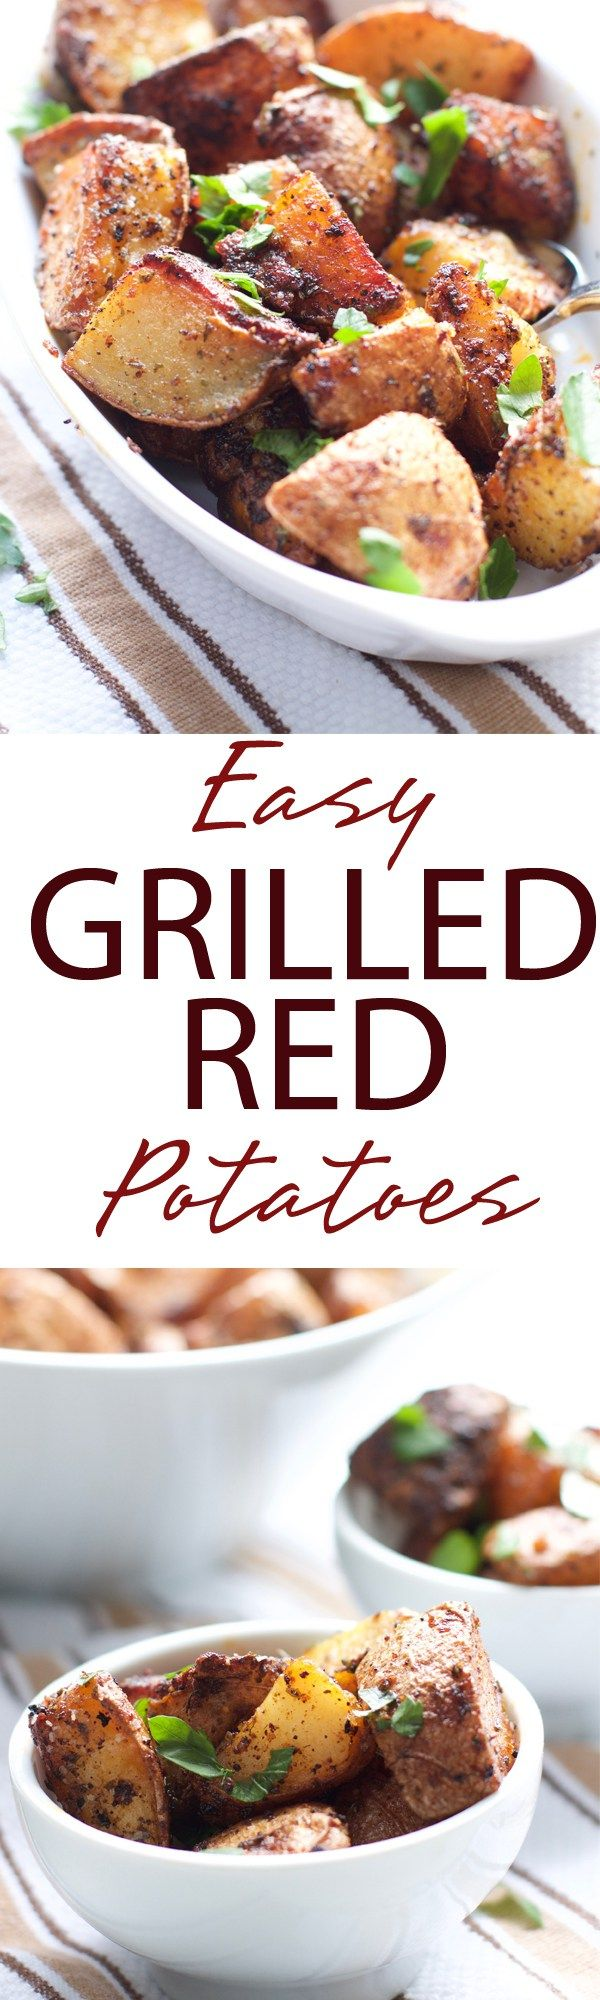 Easy Grilled Red Potatoes | Easy Grilled Red Potatoes are simply irresistible! Filled with savory spice and smokey flavor. These potatoes will be a grill win! | forkknifeandlove.com